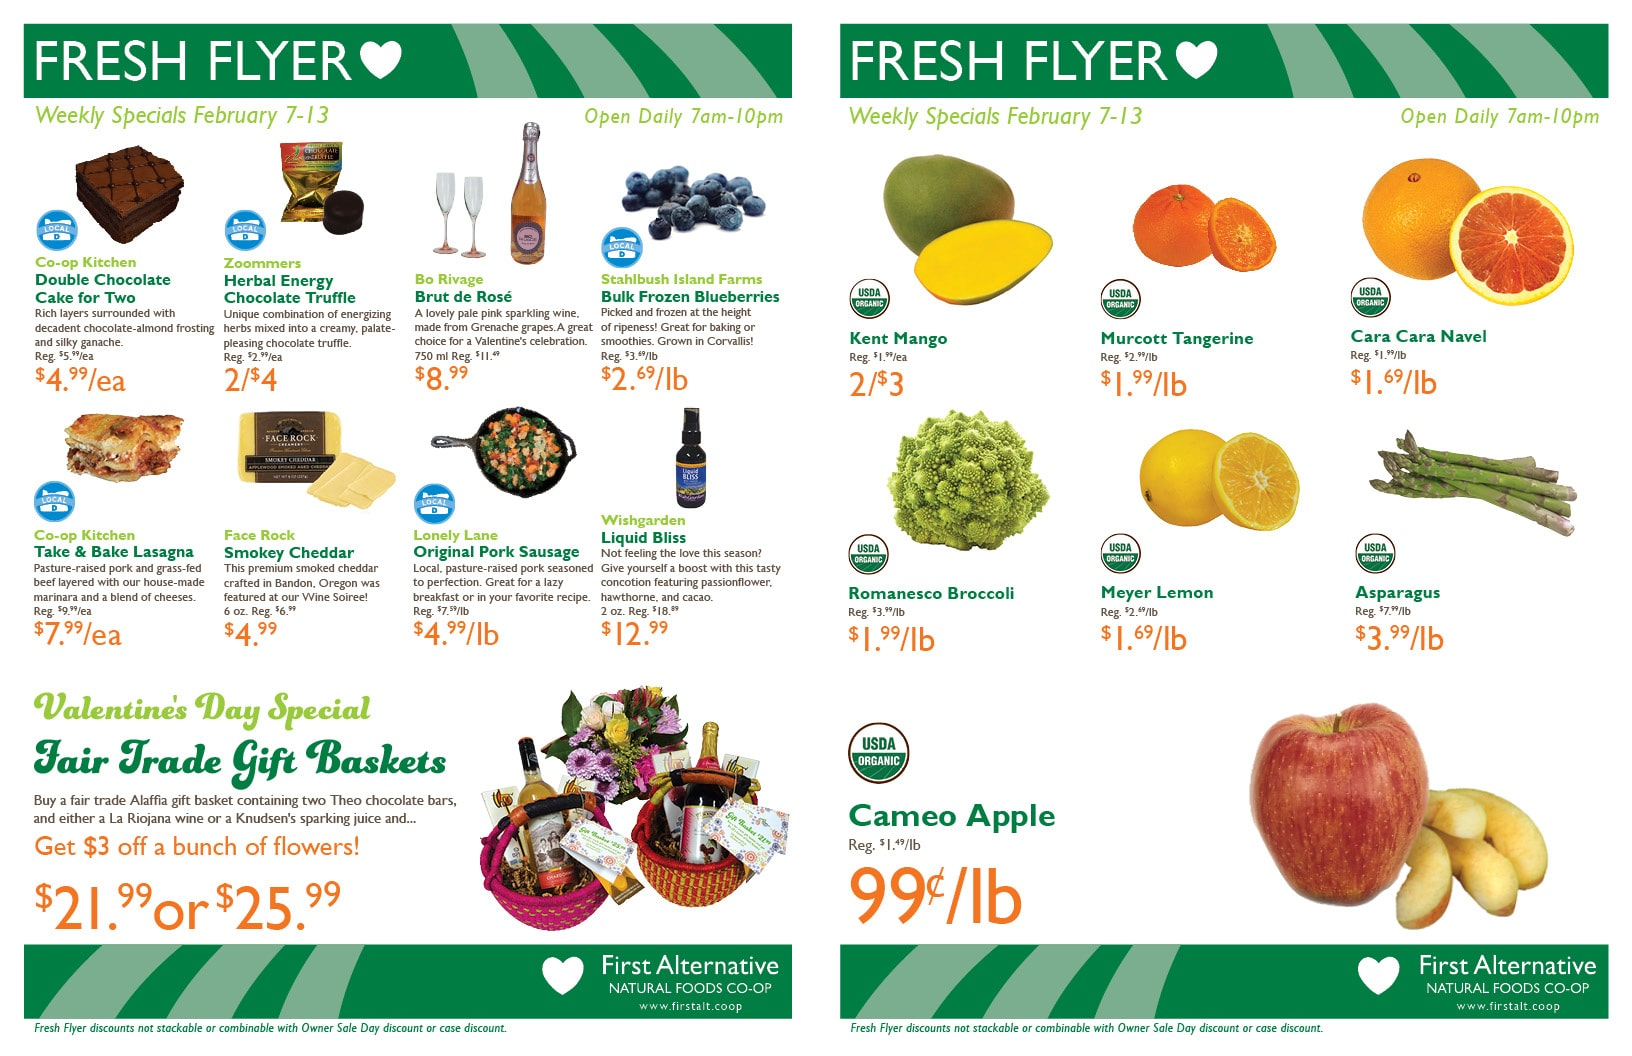 First Alternative Co-op Fresh Flyer February 7-13